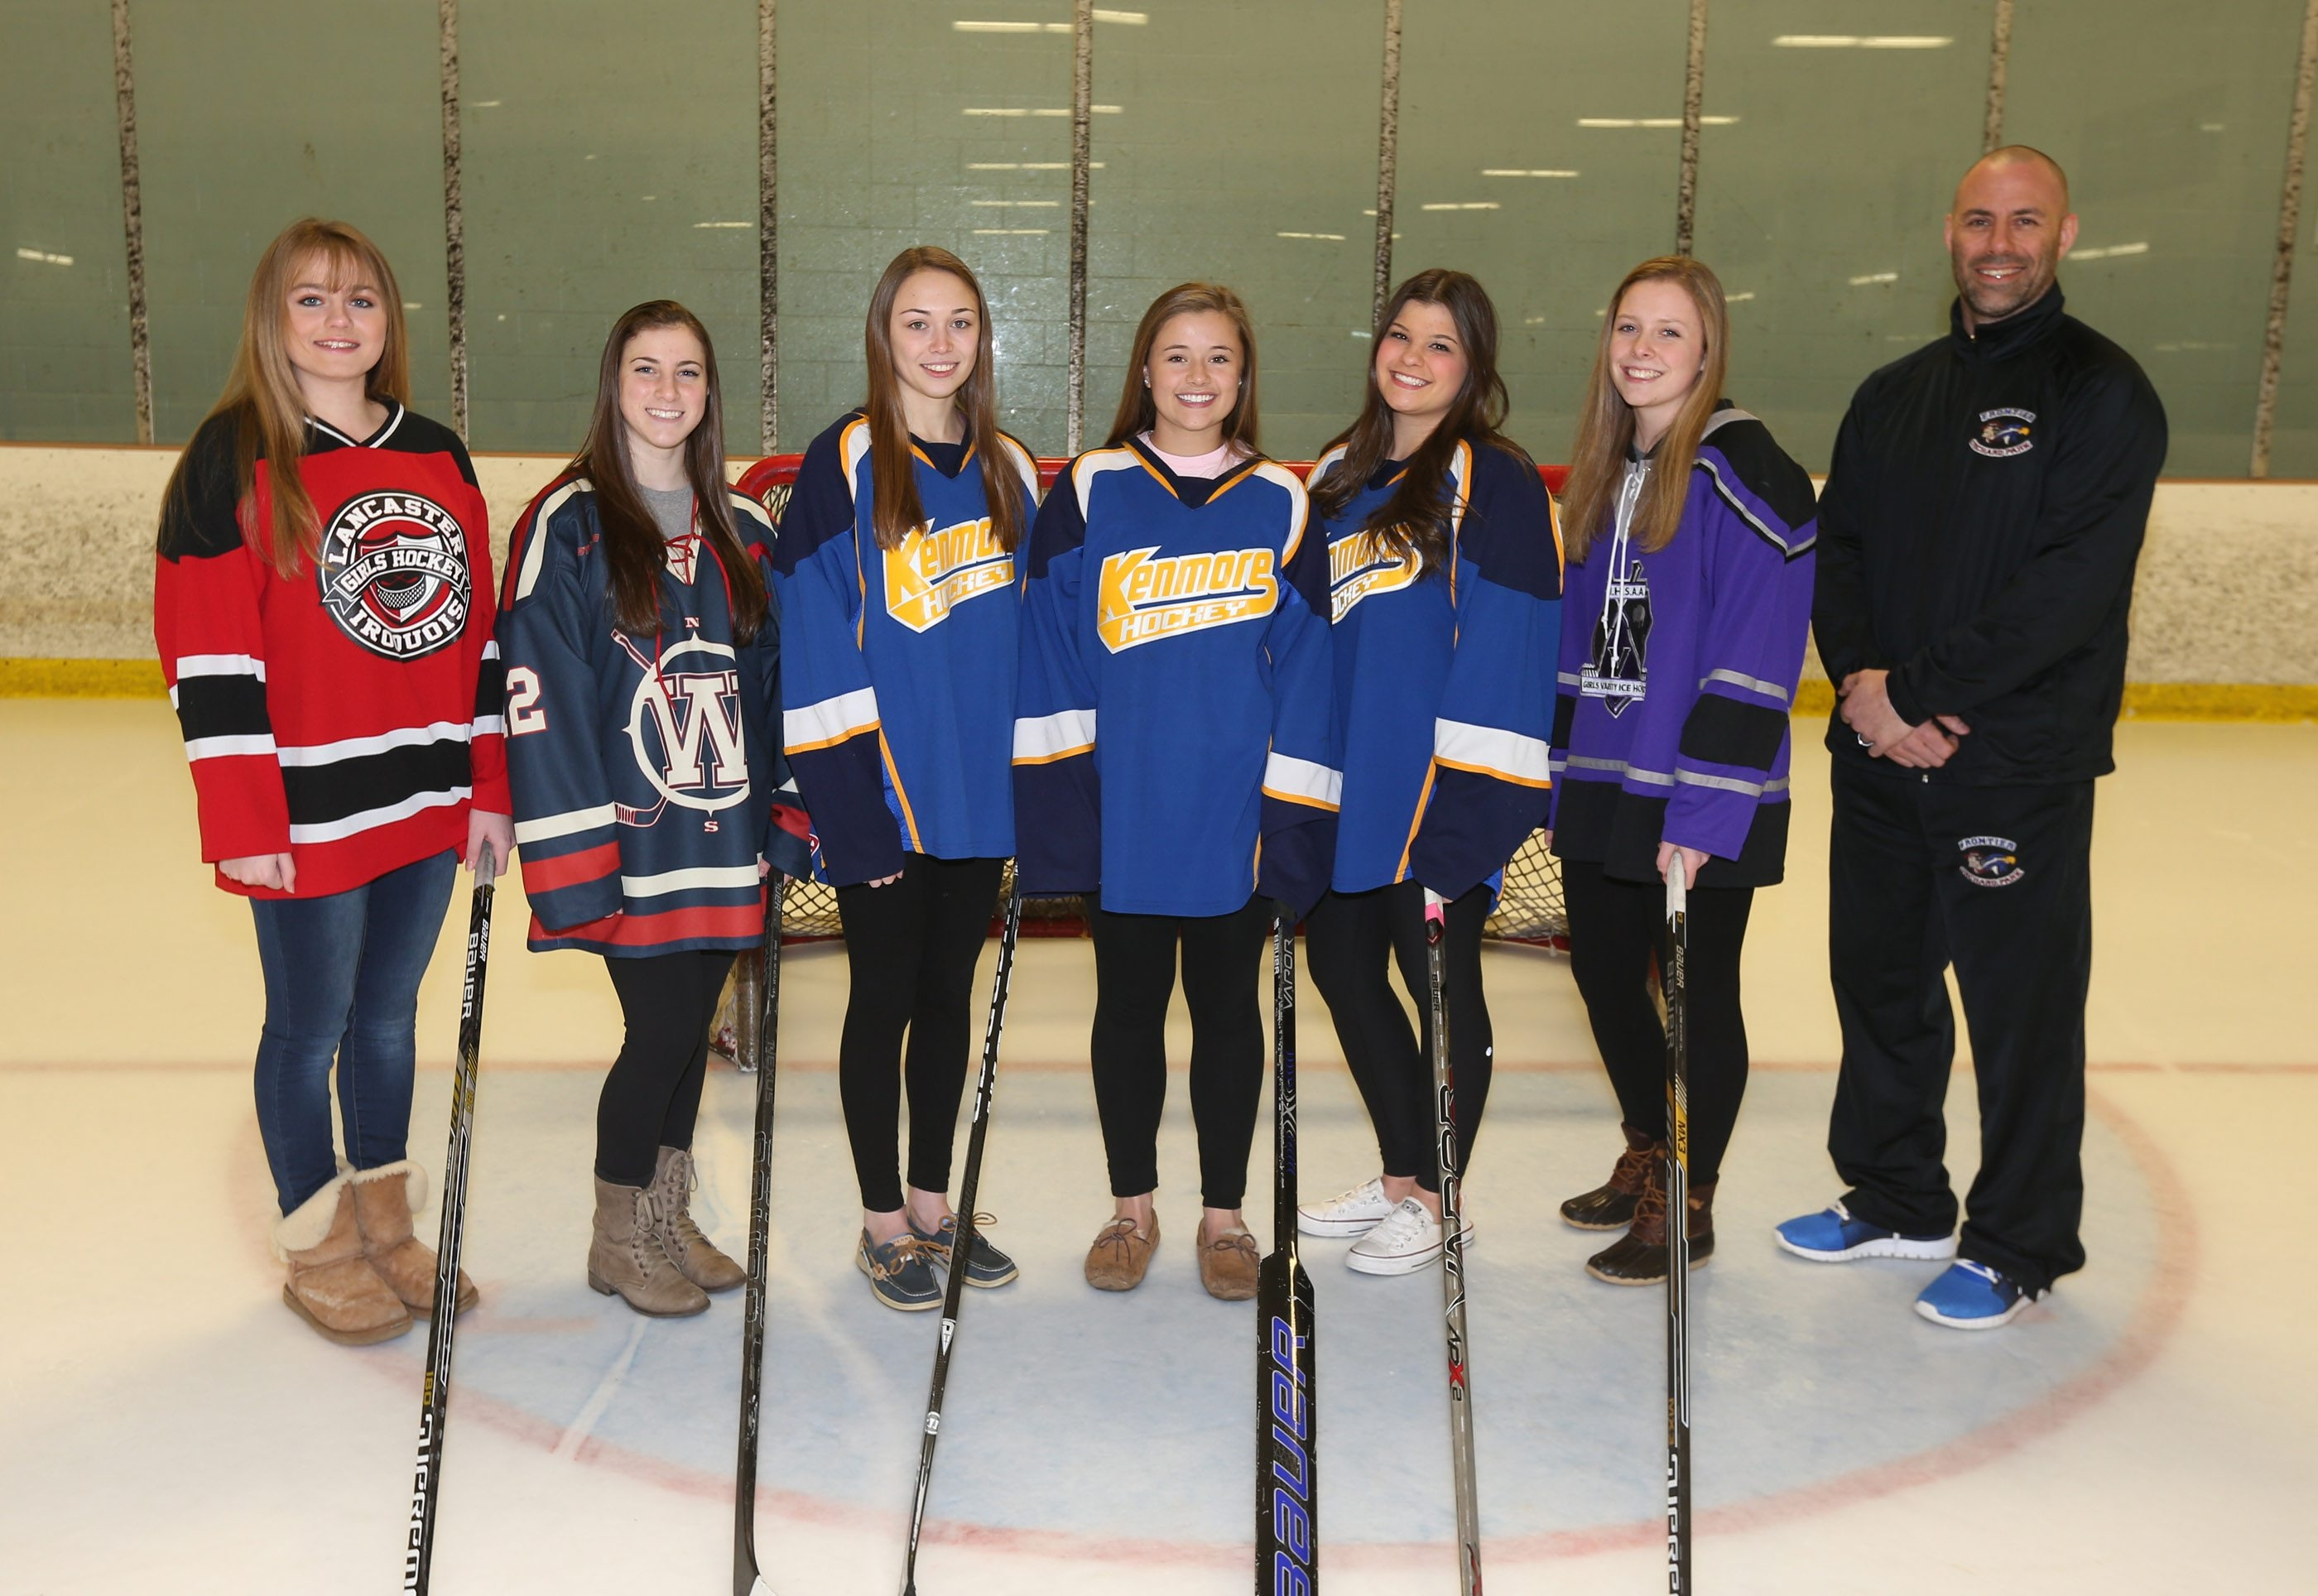 The girls All-Federation team, from left, are Megan Ruekauf, Lancaster/Iroquois;  Sarah Scolnick, Williamsville; Olivia Smith, Kenmore; Lauren Pray, Kenmore; Ana Orzechowski, Kenmore; Kaitlyn Drew- Mead, Monsignor Martin;  and Coach of the Year Jim McCarthy, Frontier-Orchard Park.